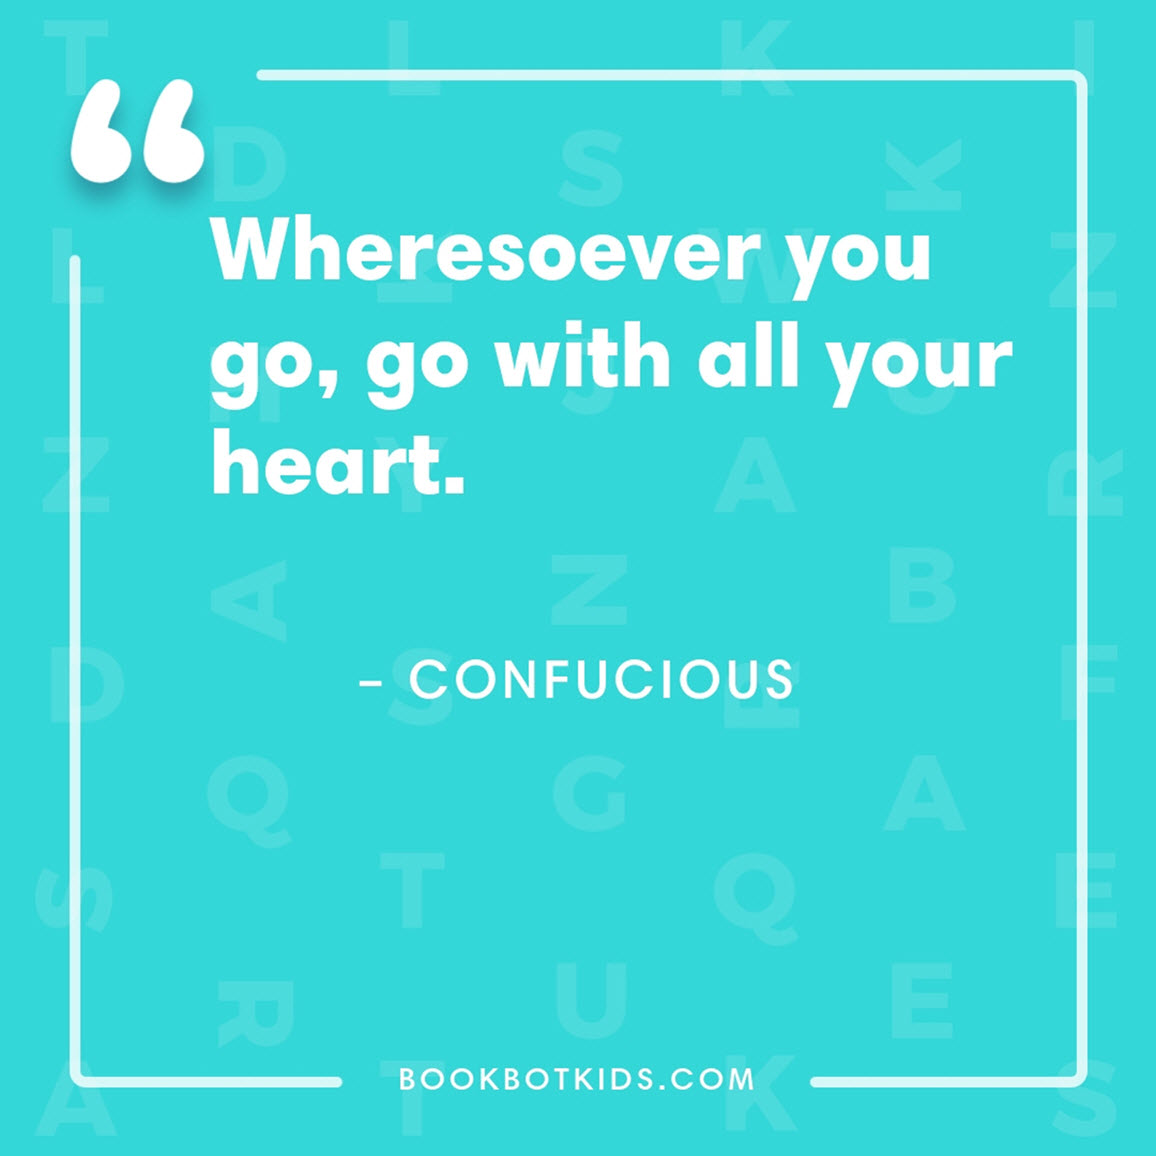 Wheresoever you go, go with all your heart. – Confucious